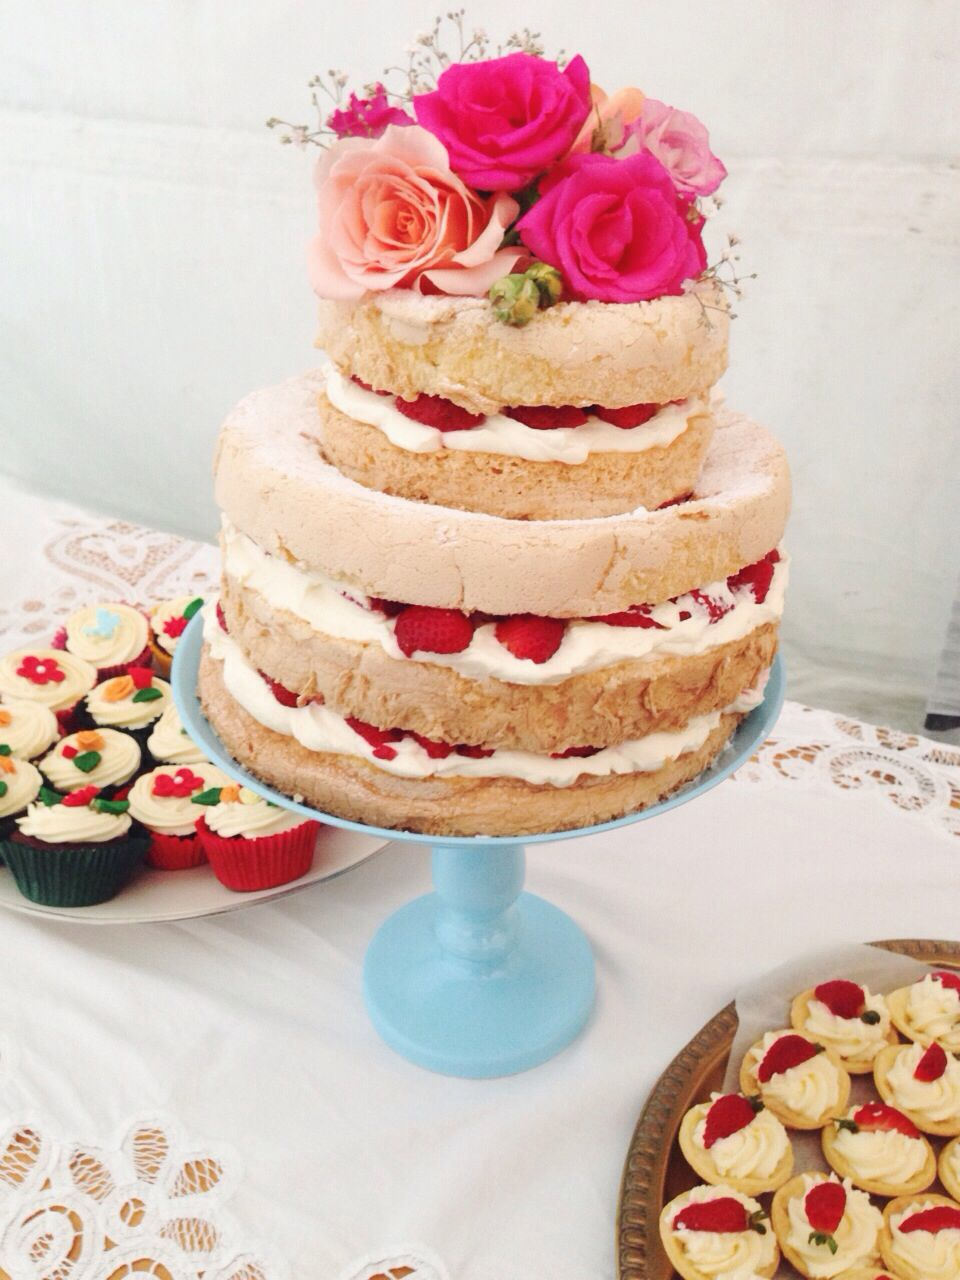 Naked Cake - A Beautifully Decorated Rustic Cake with